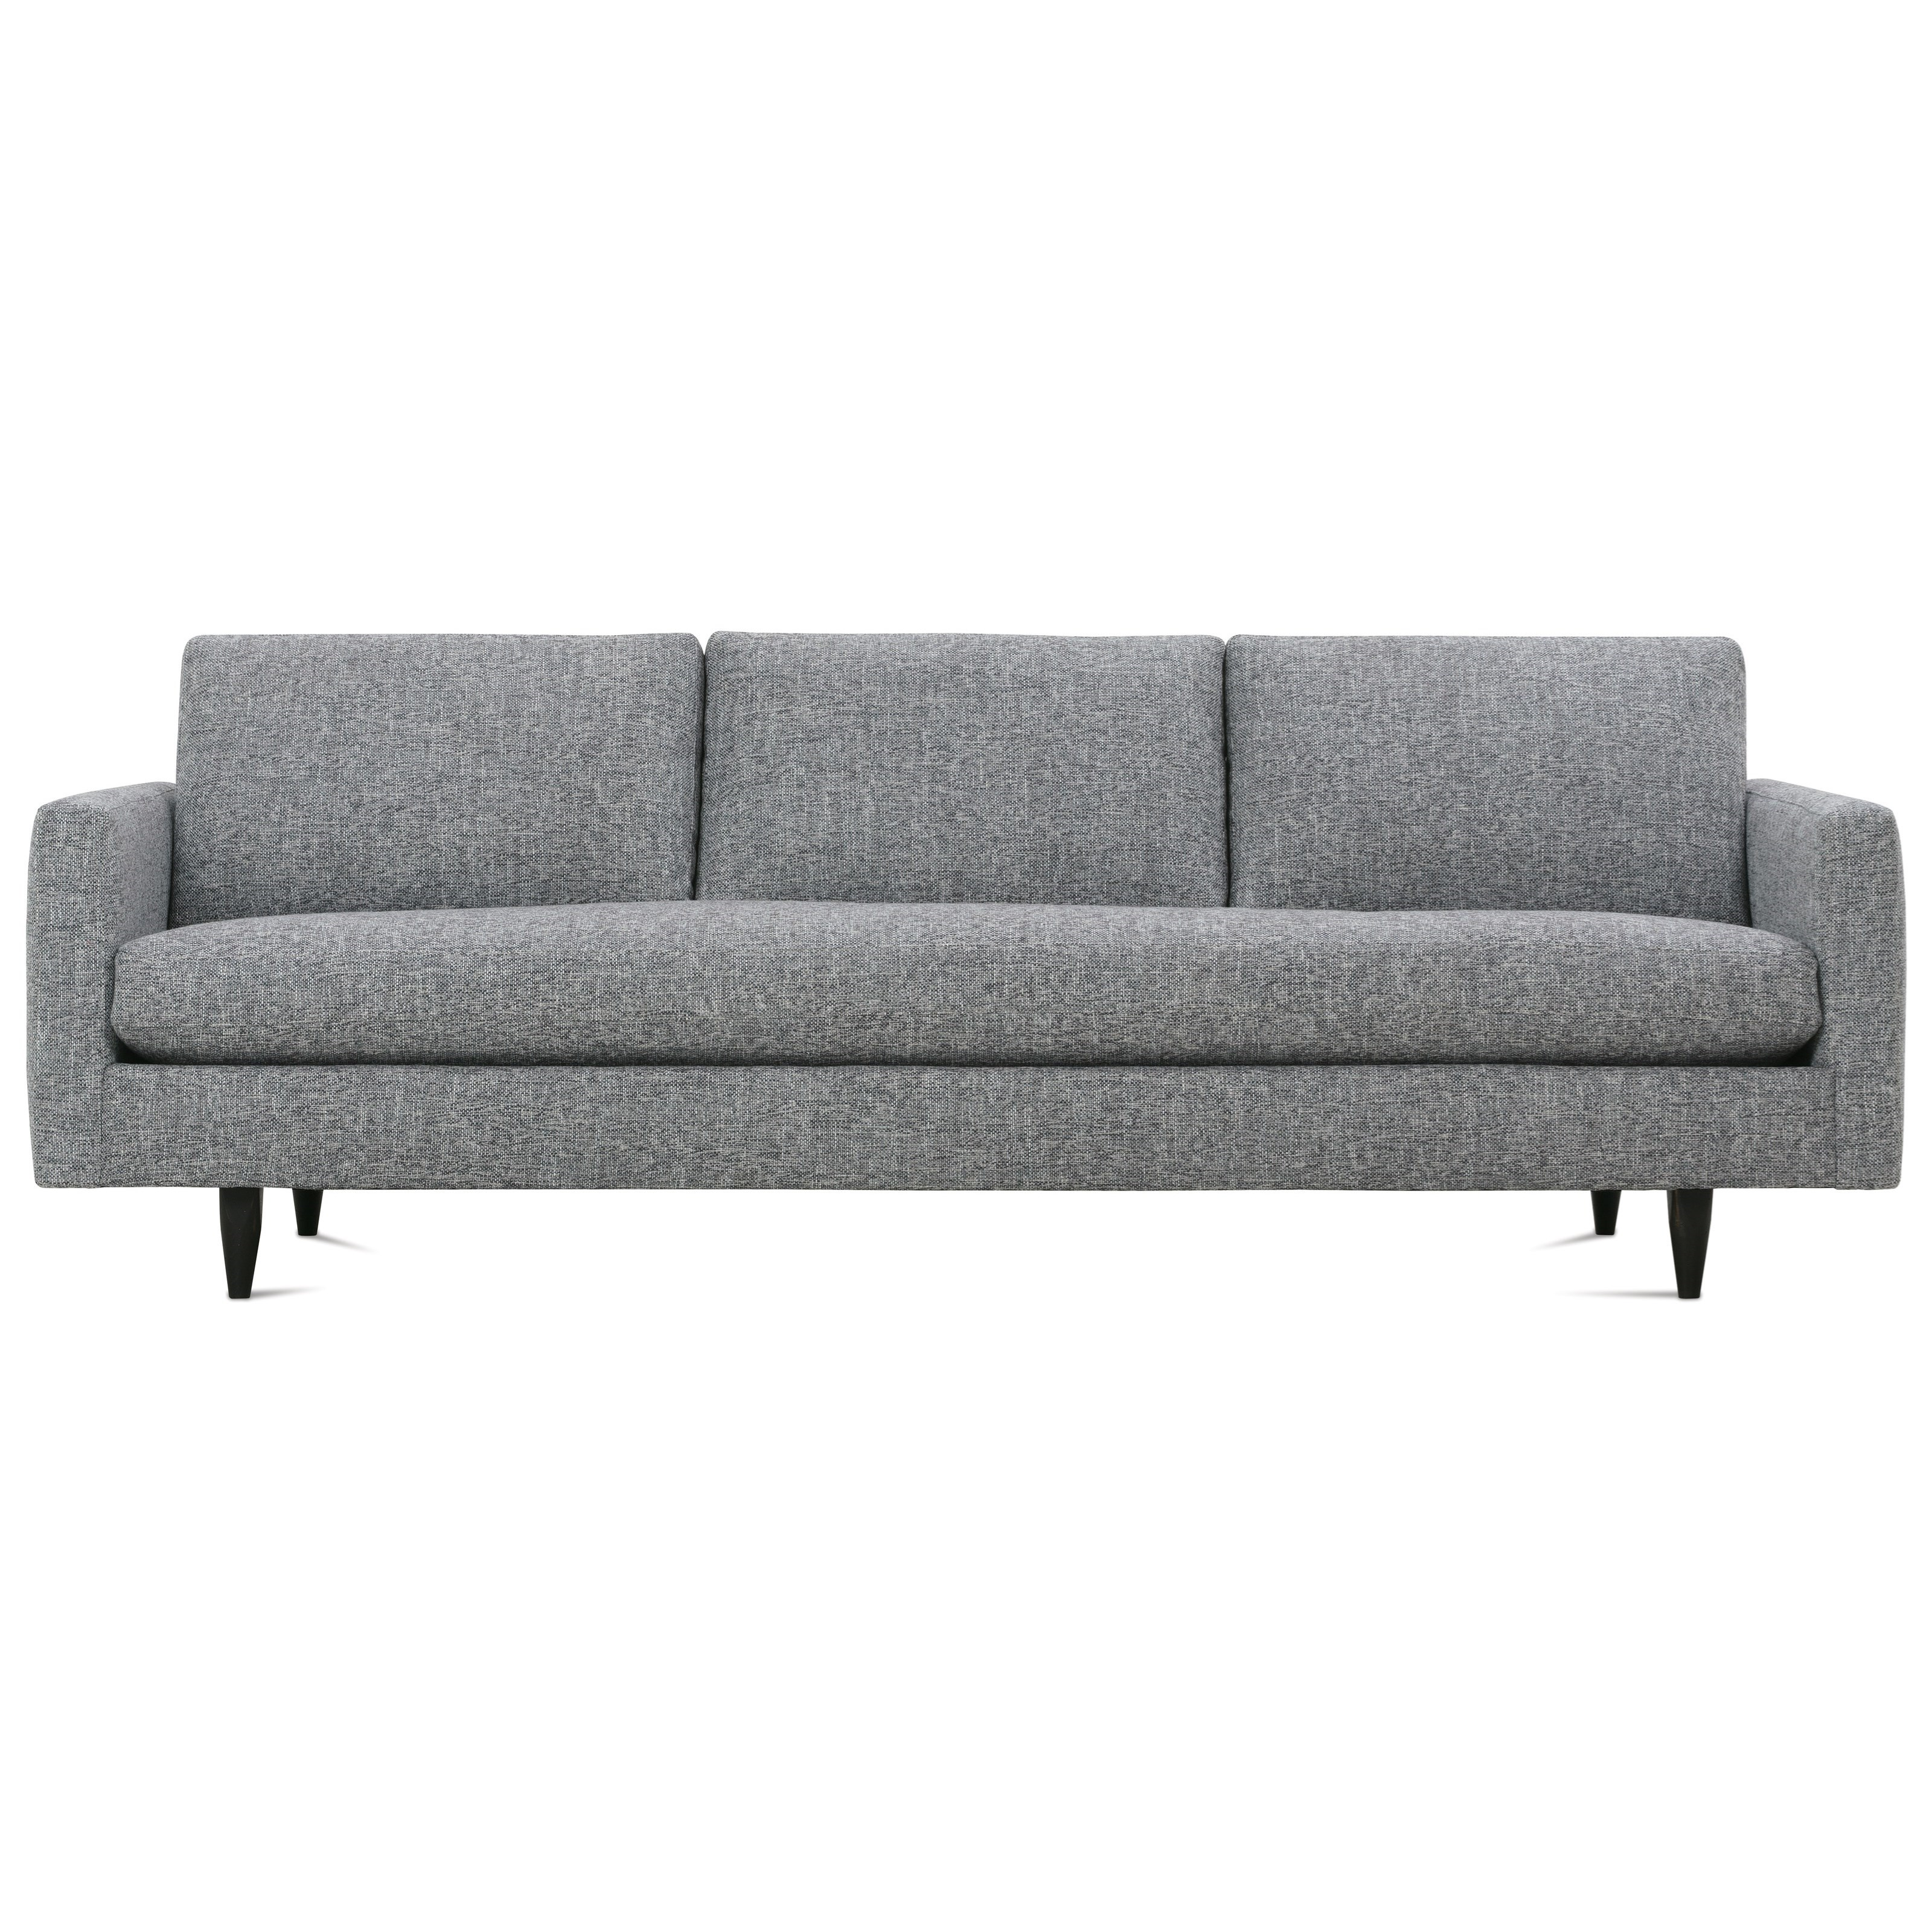 Modern Mix Large Sofa by Rowe at Esprit Decor Home Furnishings